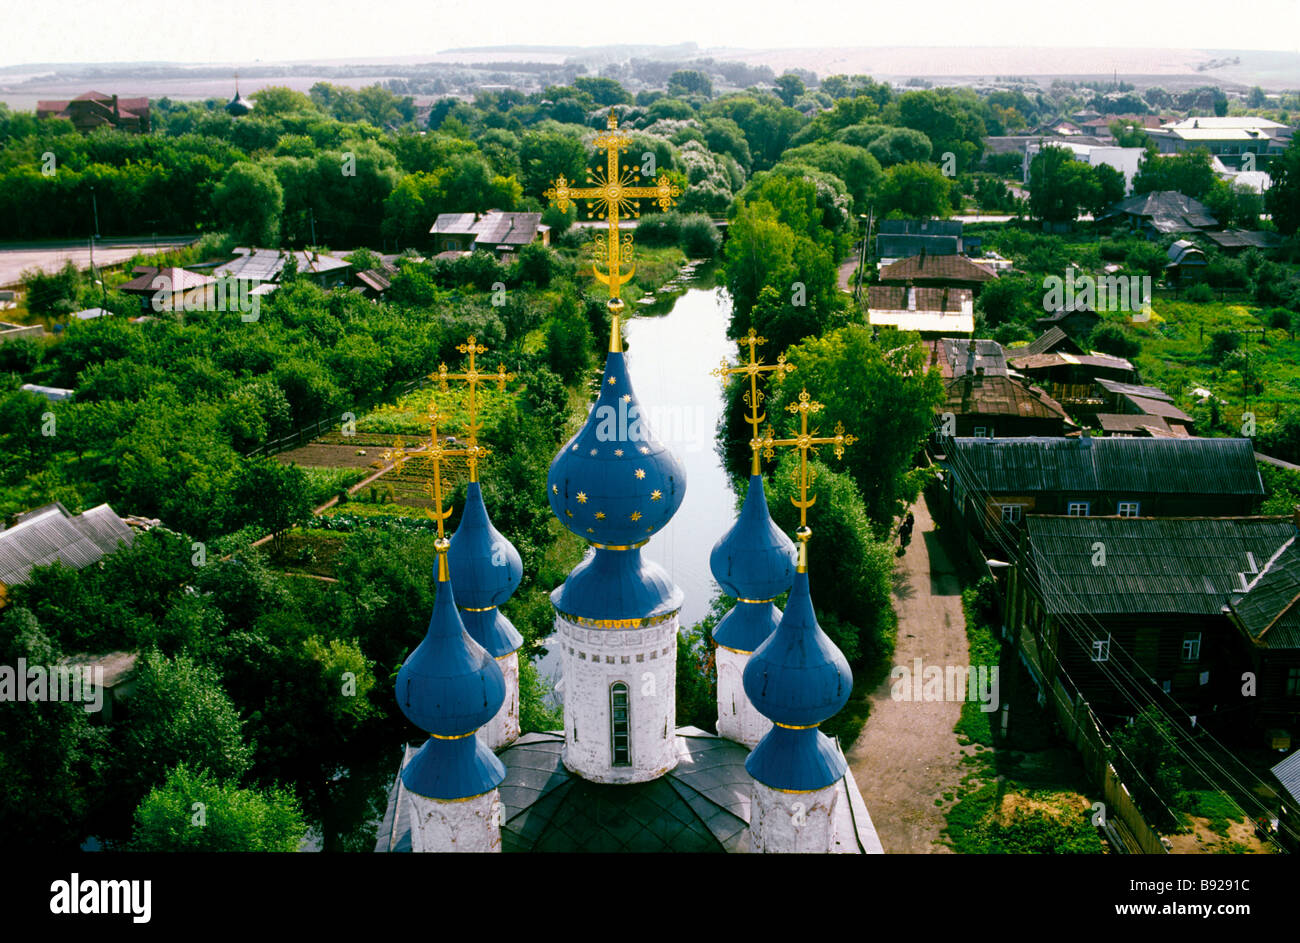 The cupolas of the Archangel Michael Cathedral in Yuriev Polsky near Vladimir Central Russia - Stock Image